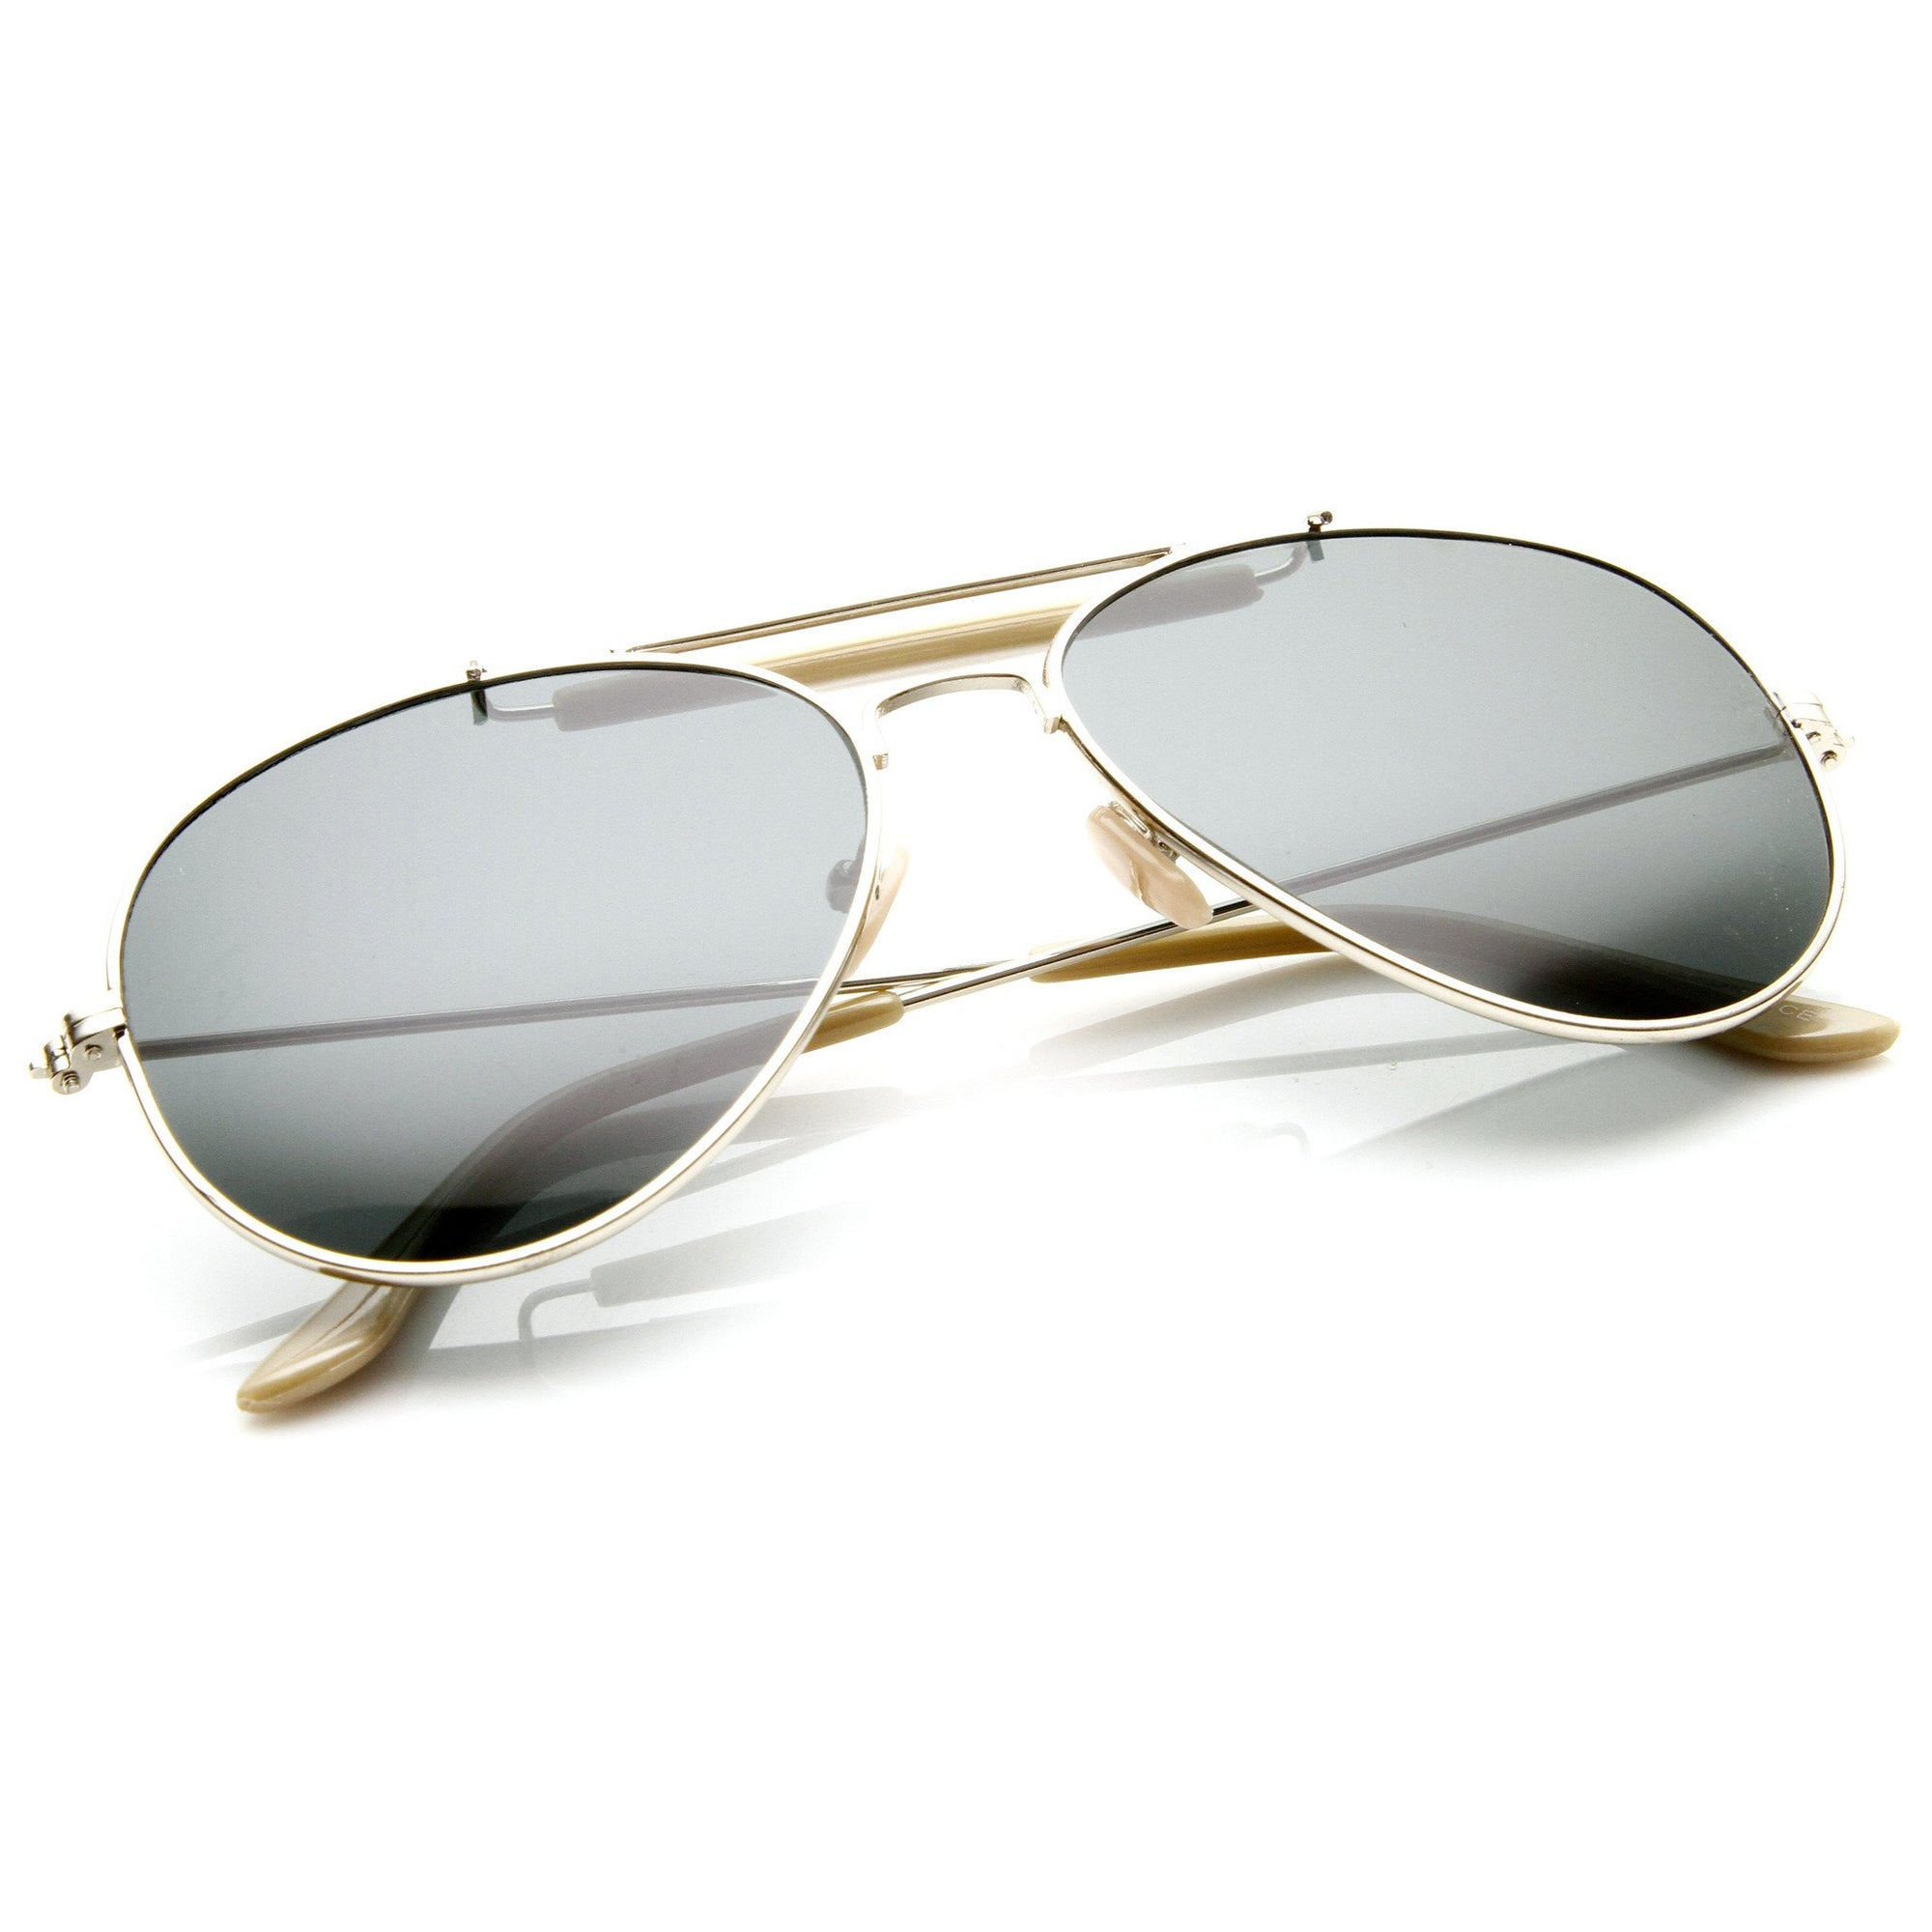 095c7c0afe229 ... Classic Outdoorsman Style Metal Aviator Sunglasses 55mm 8837 · Gold ·  Gold · Gold